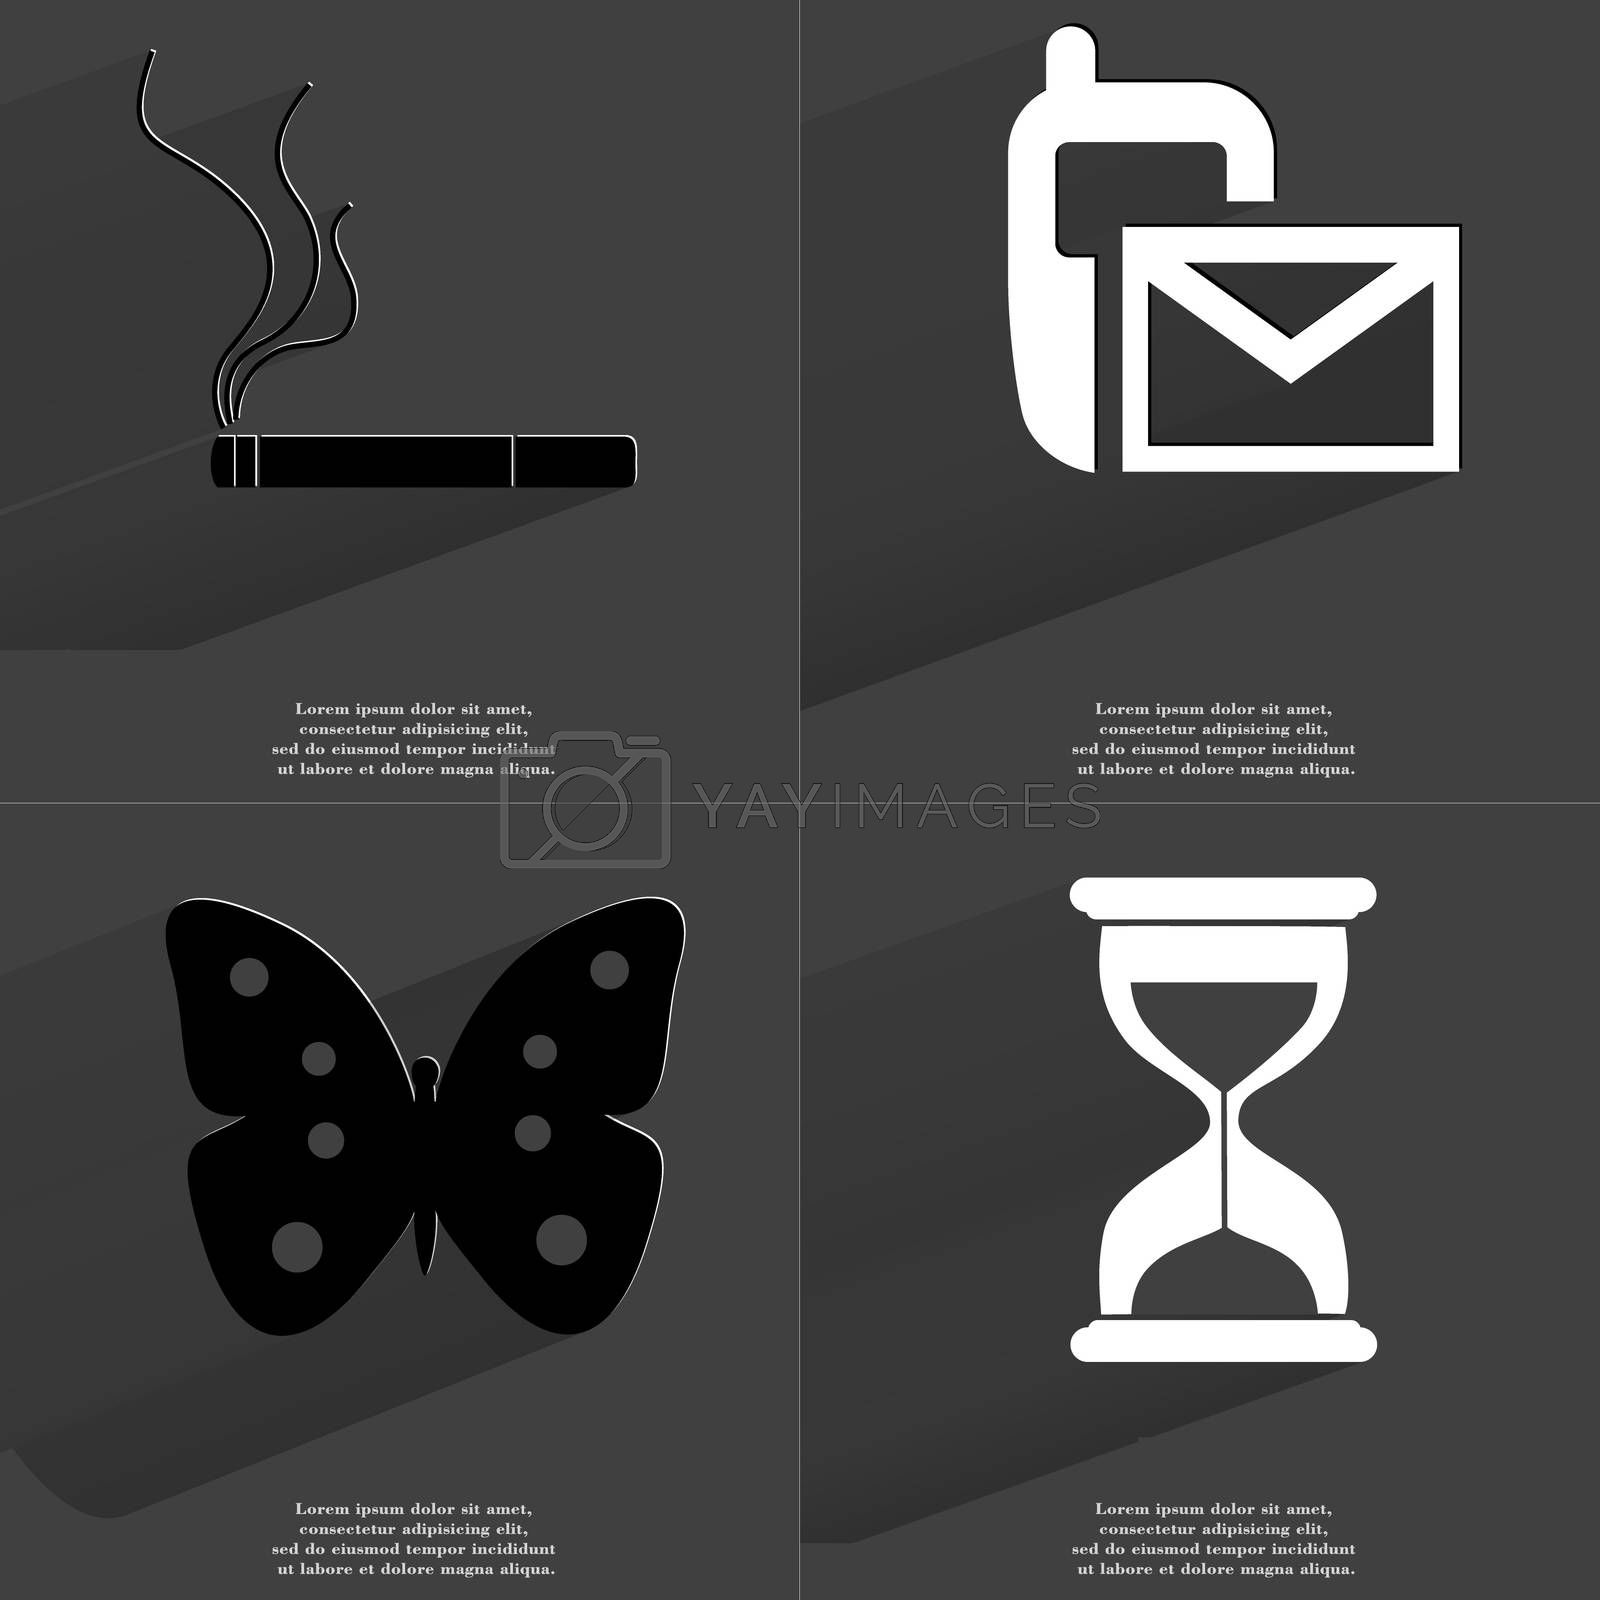 Royalty free image of Cigarette, SMS icon, Butterfly, Hourglass. Symbols with long shadow. Flat design by serhii_lohvyniuk